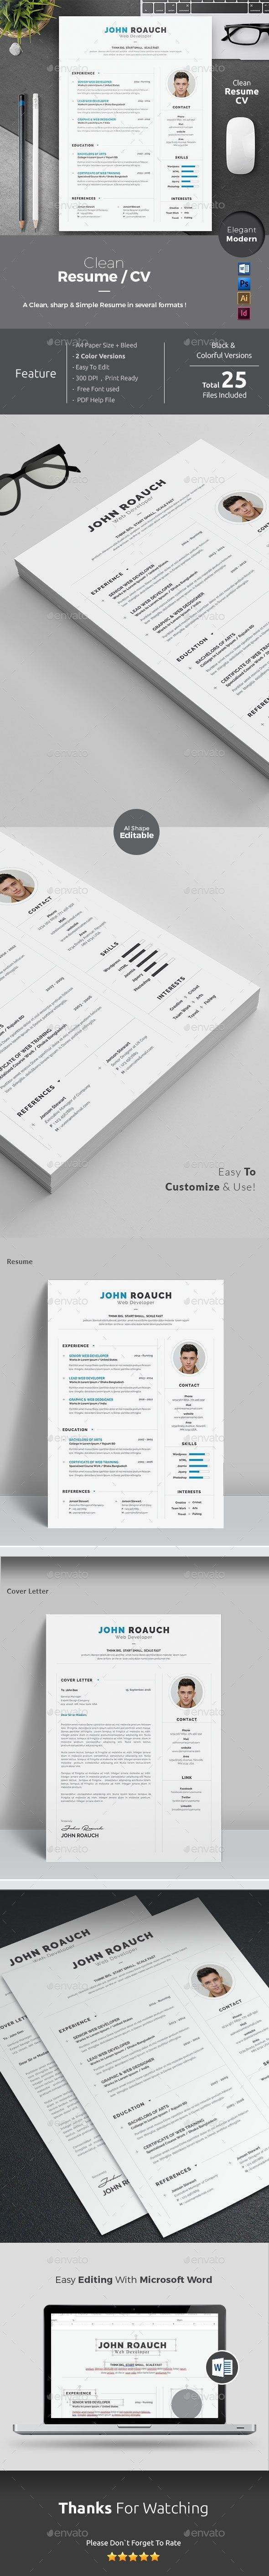 496 Best Resumes Images On Pinterest